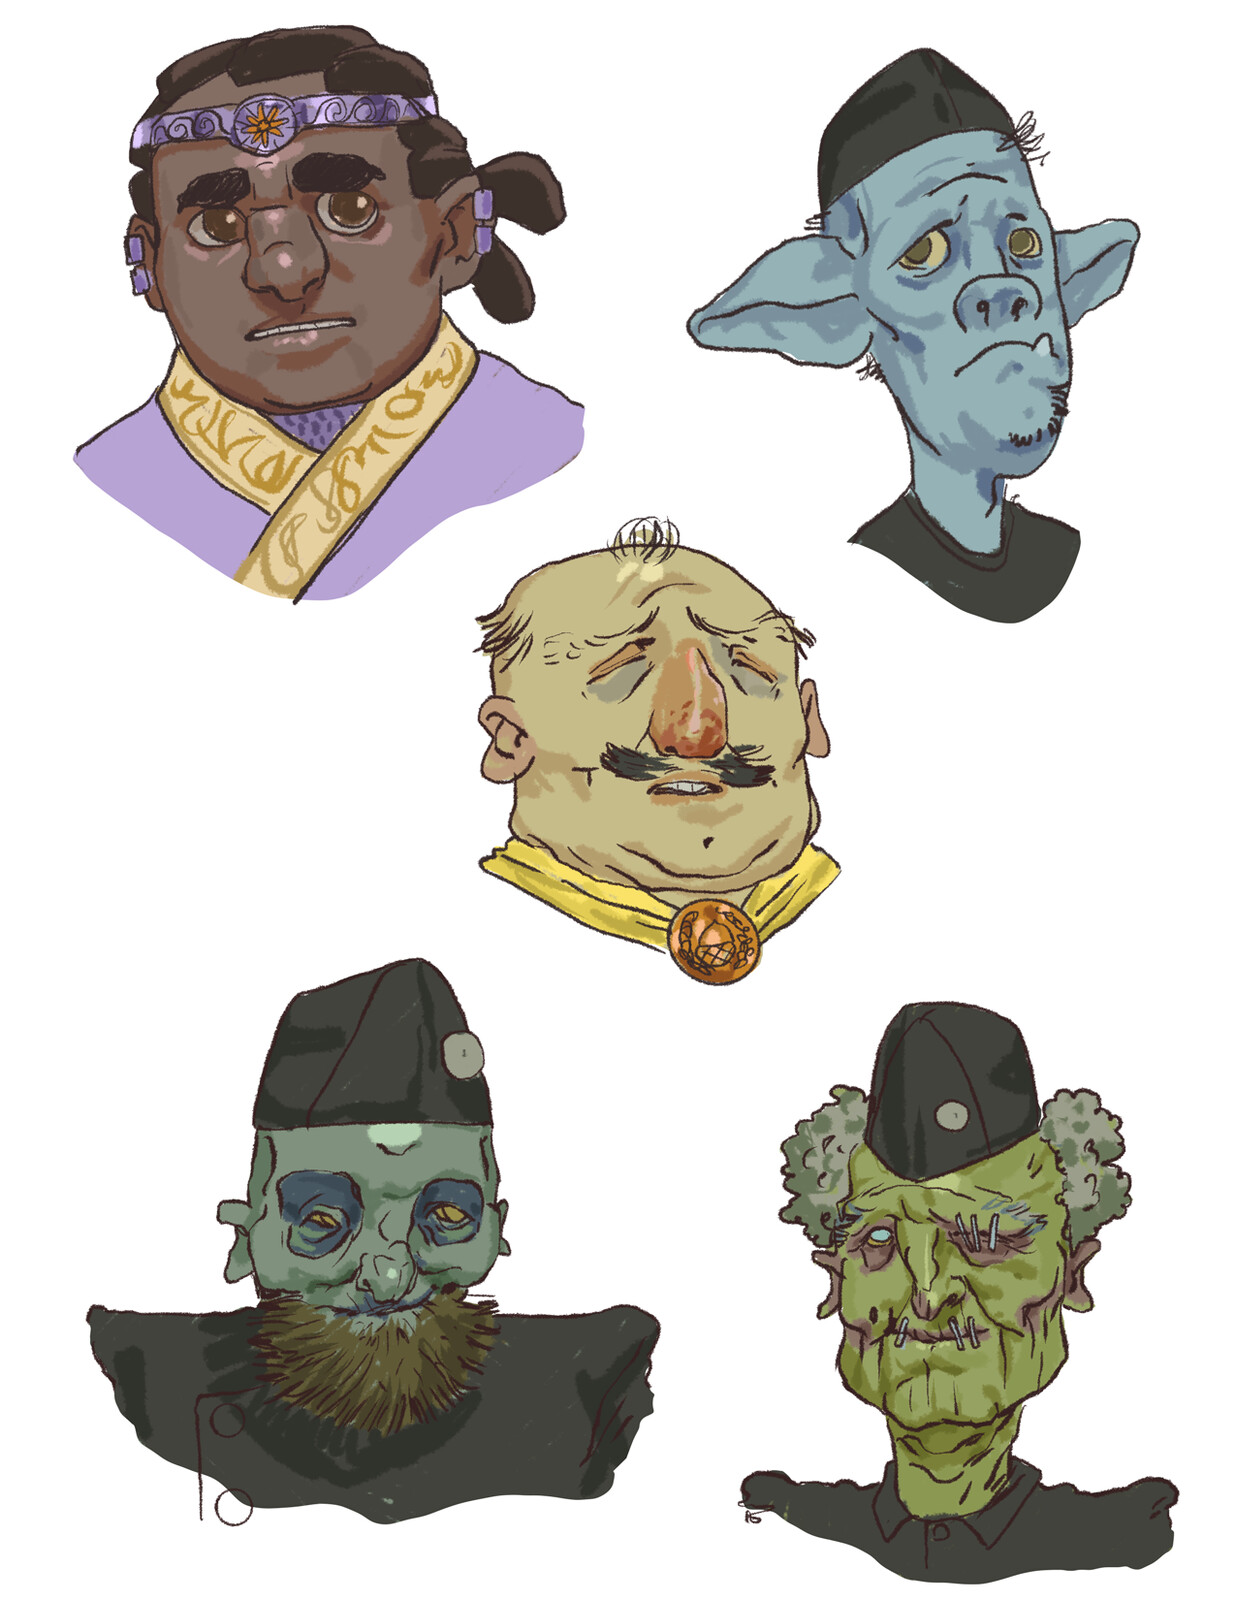 Portraits of NPCs and enemies the players could encounter in the adventure